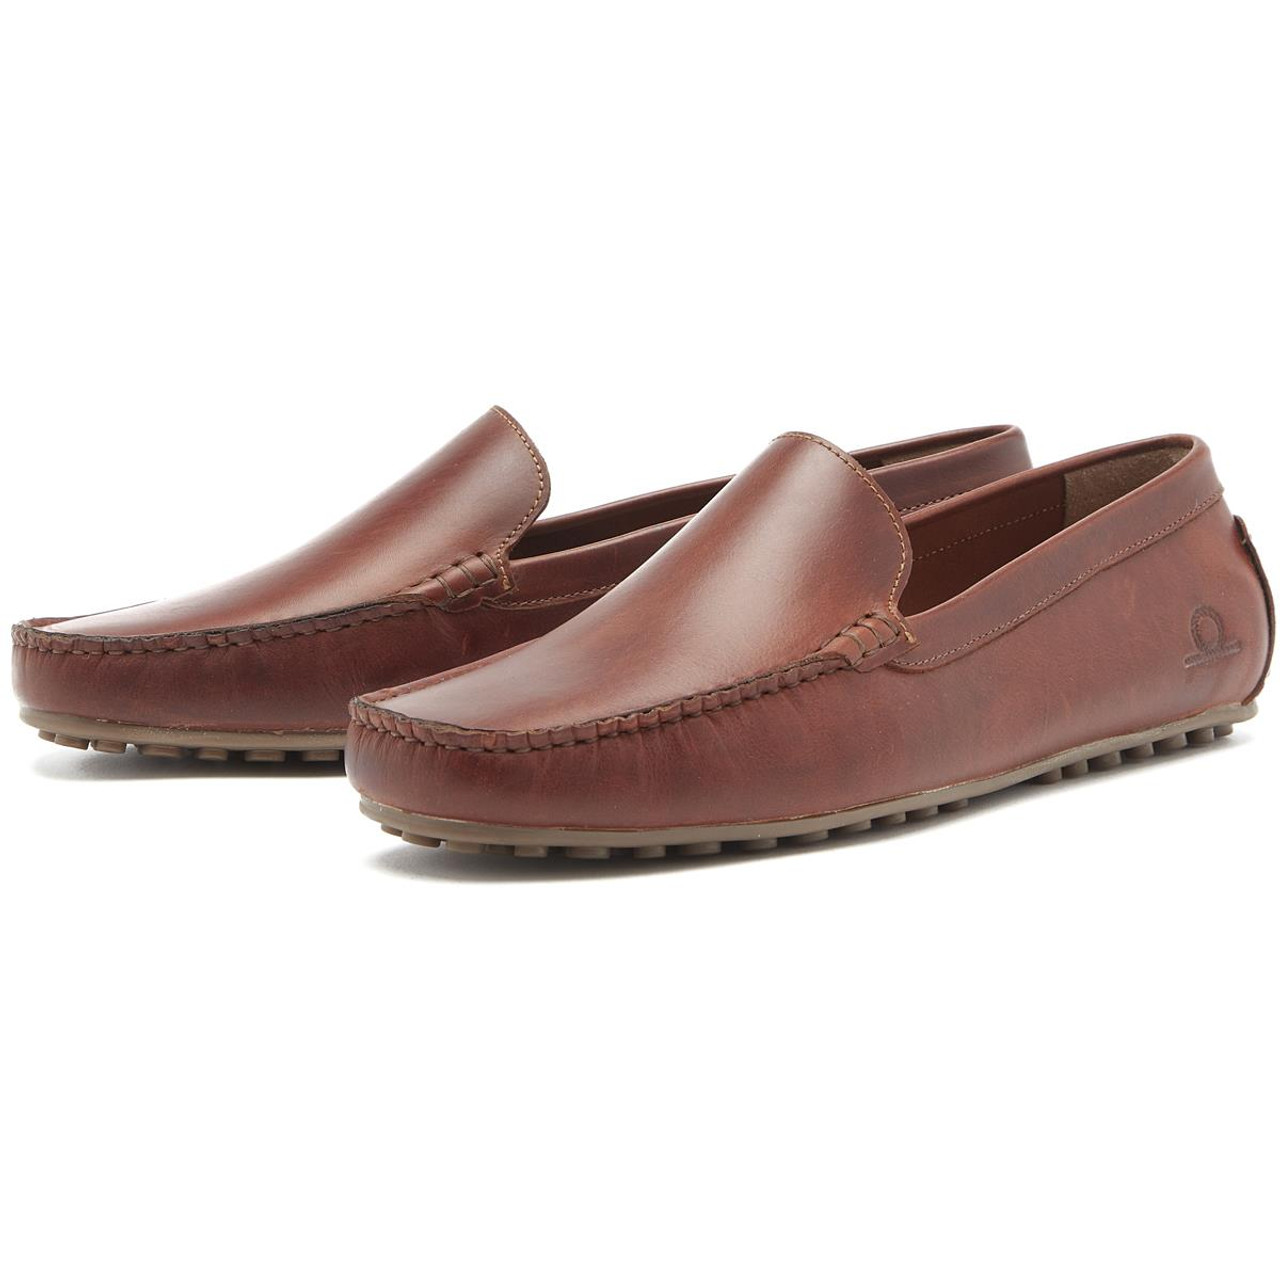 Chatham Ludlow Loafers